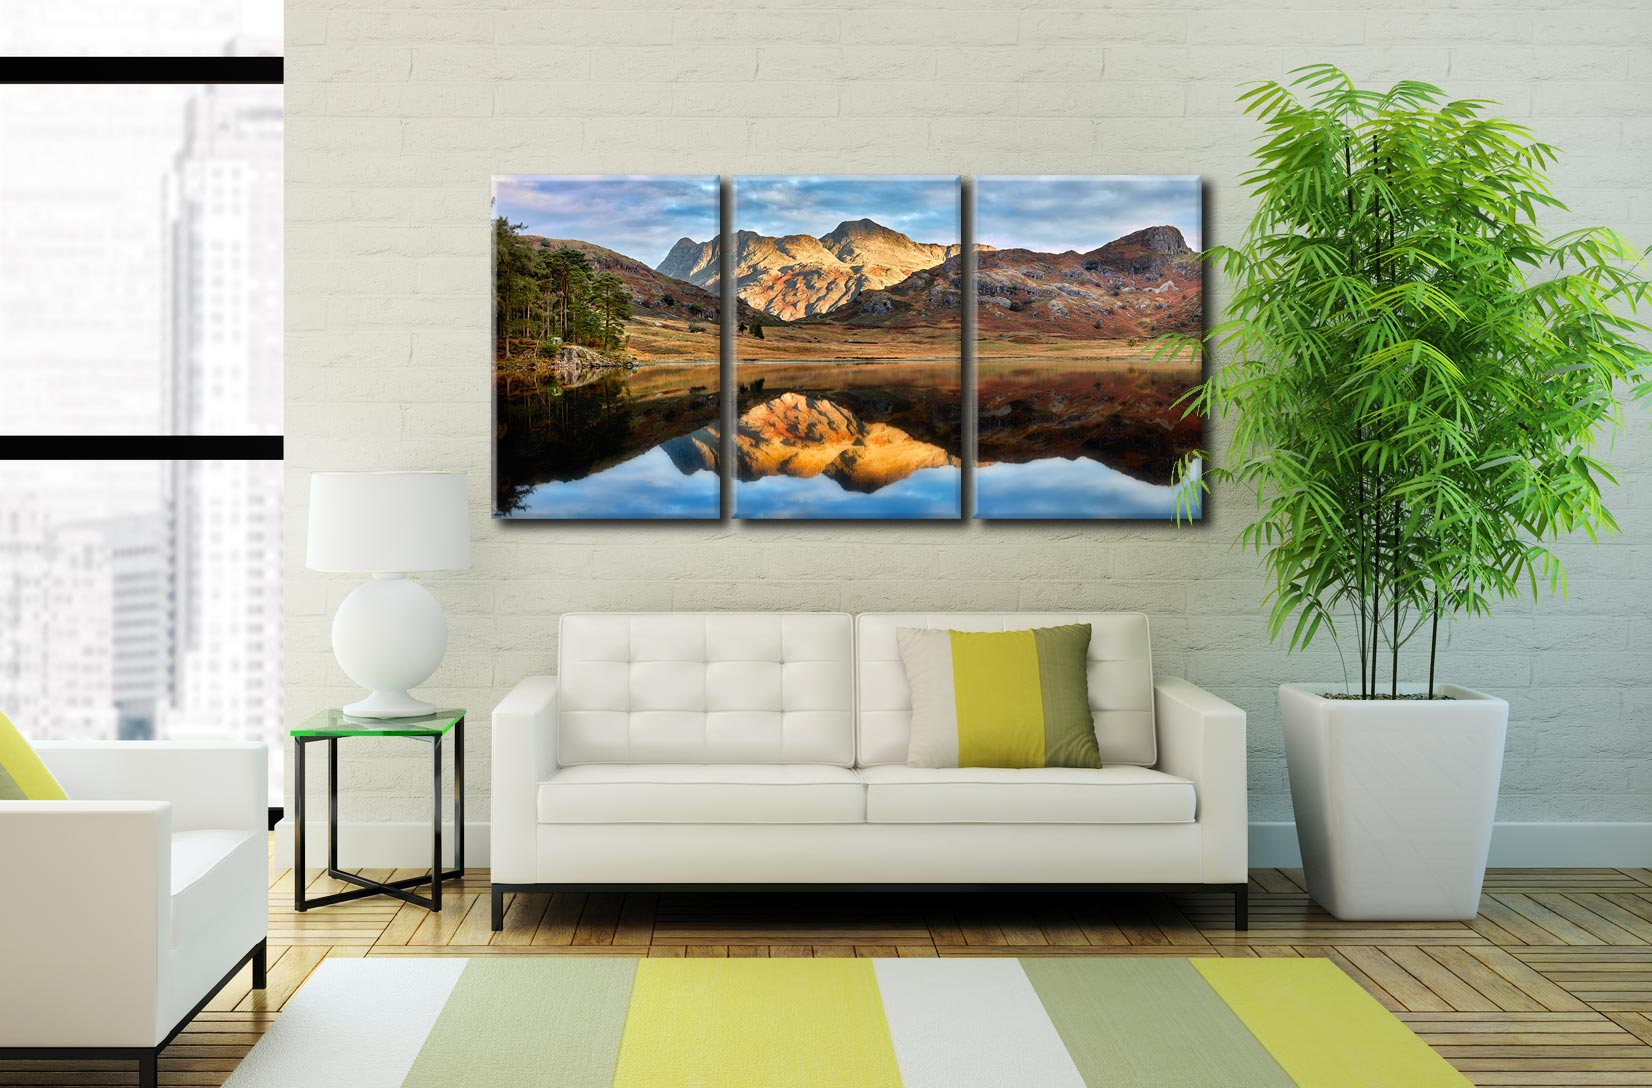 Blea Tarn and Langdale Pikes - 3 Panel Canvas on Wall